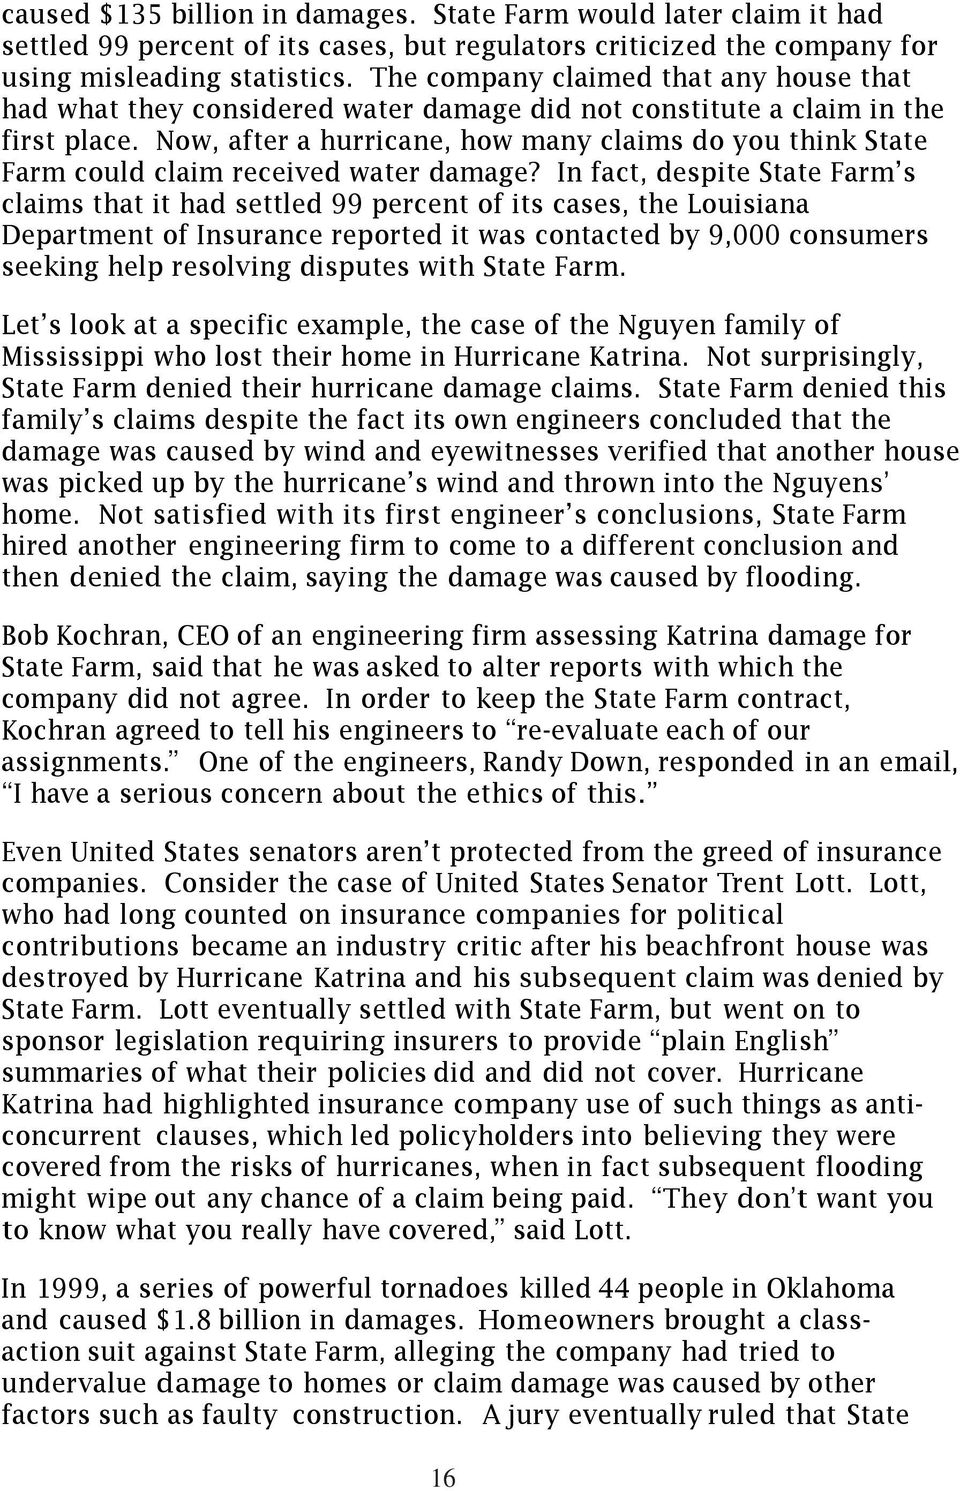 Now, after a hurricane, how many claims do you think State Farm could claim received water damage?